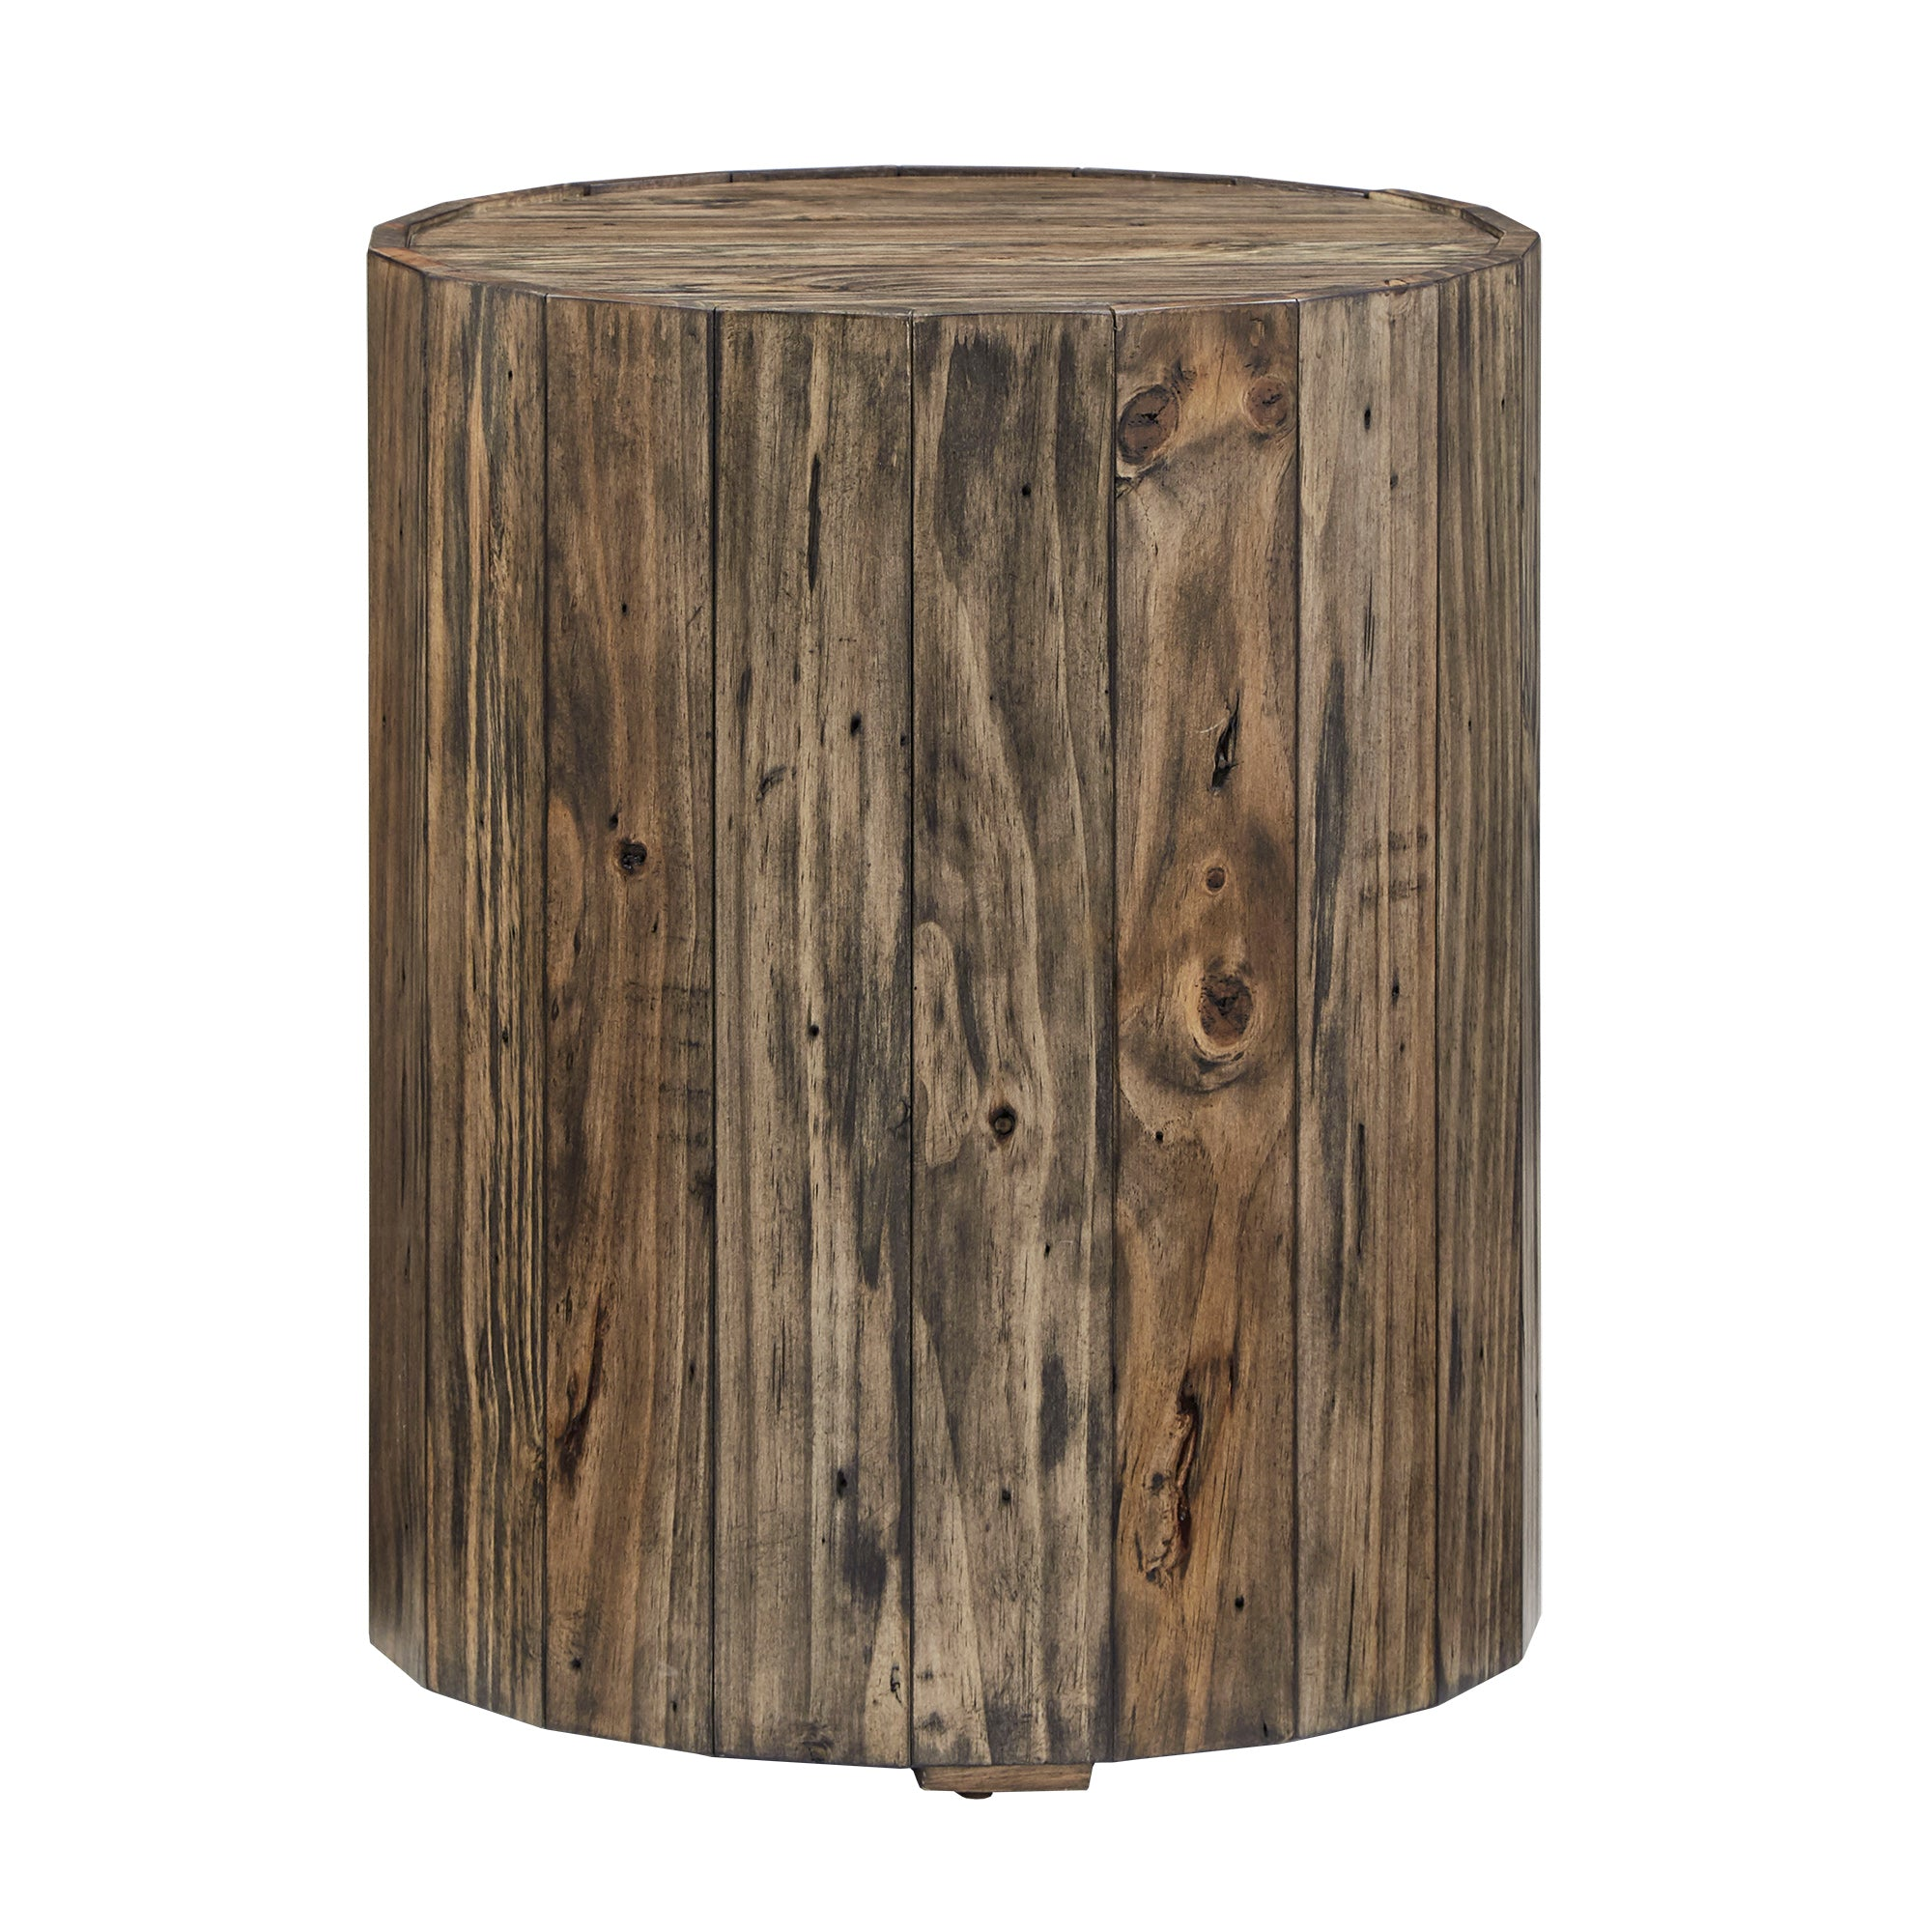 Distressed Brown Finish Reclaimed Wood Barrel End Table